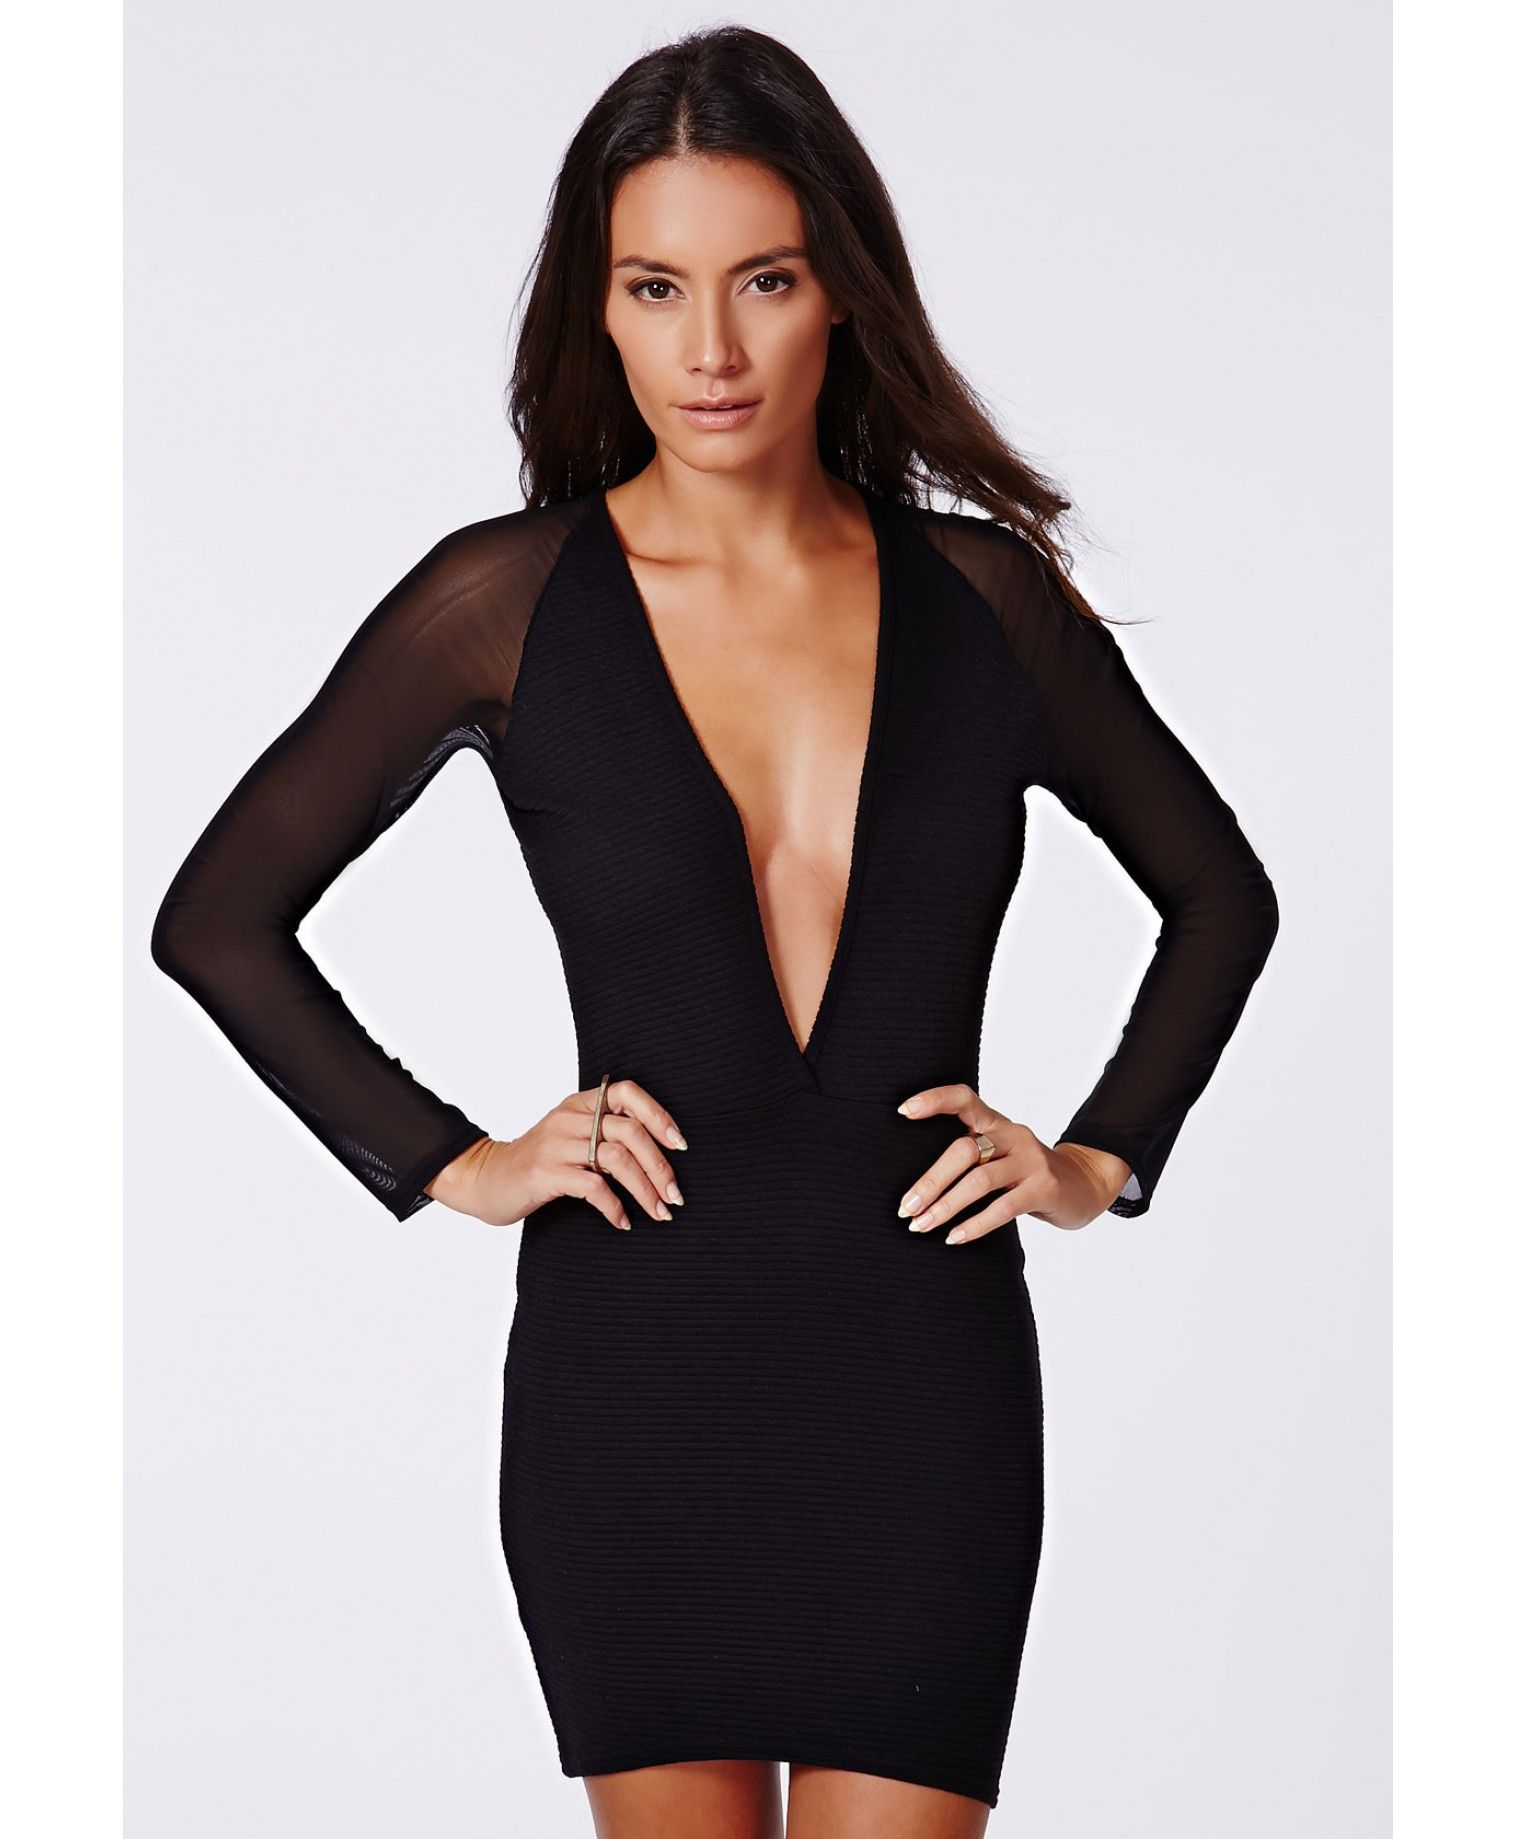 Missguided Fearne Mesh Sleeve Ribbed Plunge Dress Black Sheer Bodycon Dress Long Sleeve Bodycon Dress Long Sleeve Cocktail Dress [ 1839 x 1516 Pixel ]